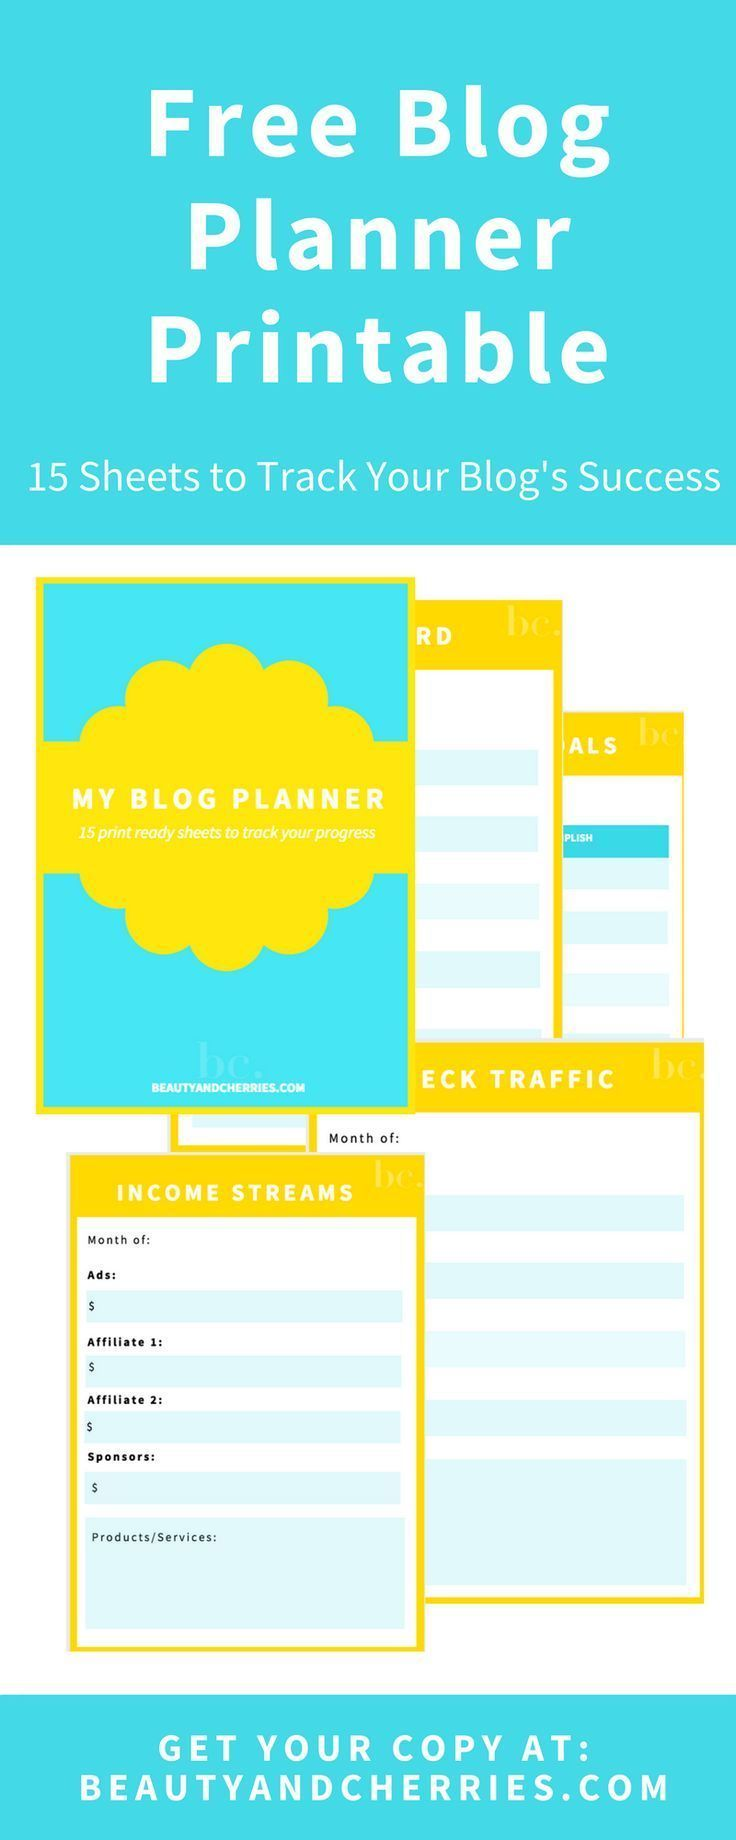 Already have a blog but still feel confused? Click through to get this blog planner printable for free which will help you track your progress as a blogger.